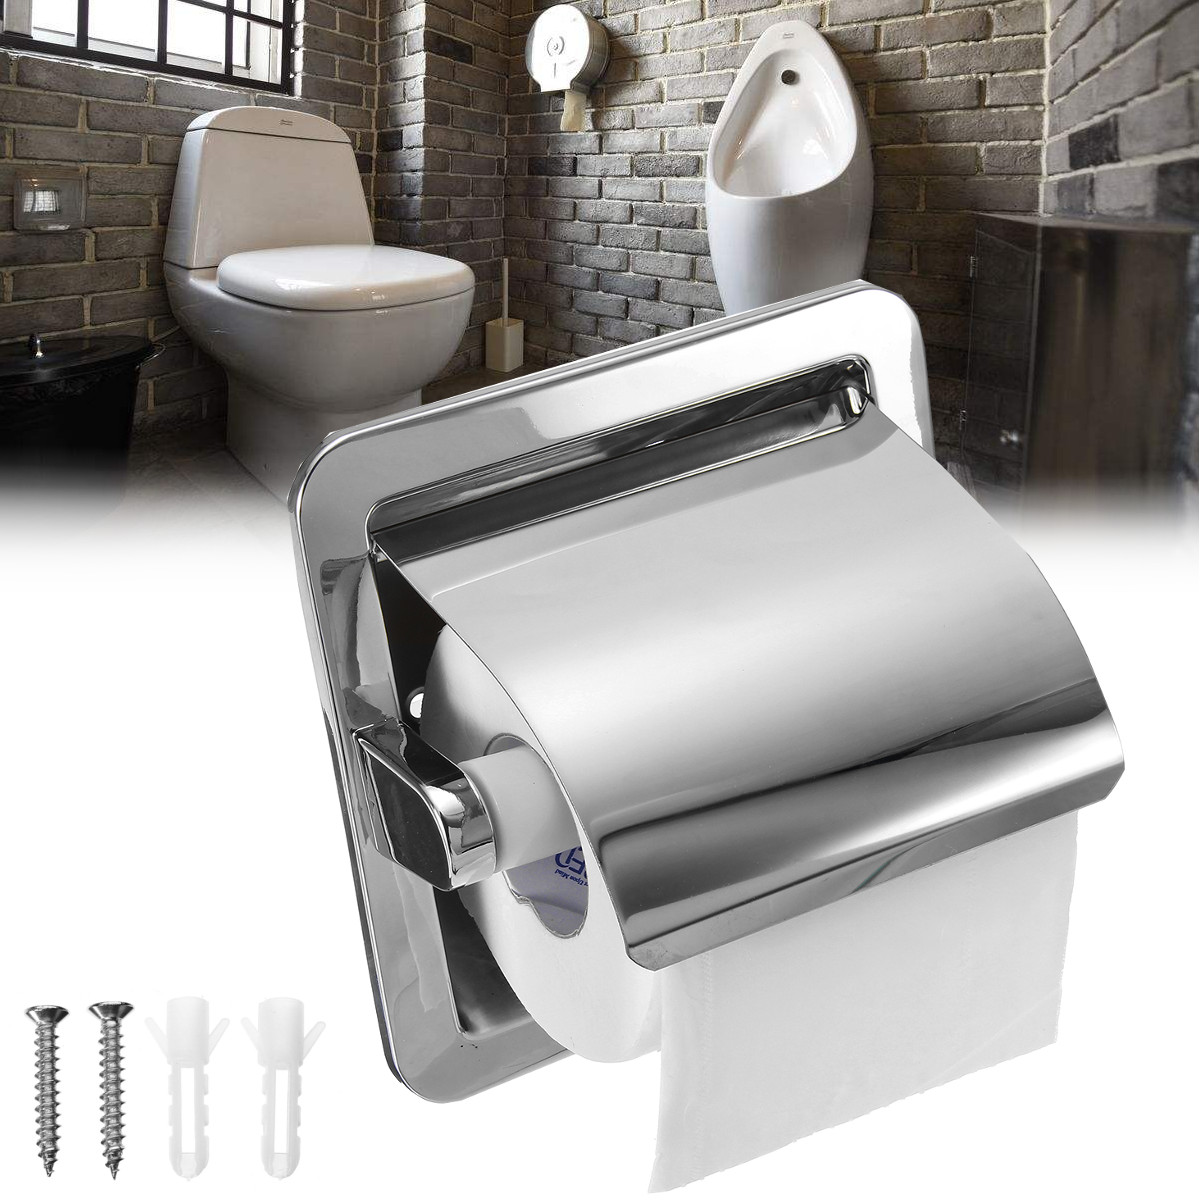 Stainless Steel Bathroom Toilet Roll Paper Holder Box Concealed Wall Mounted Recessed Wall Embedded